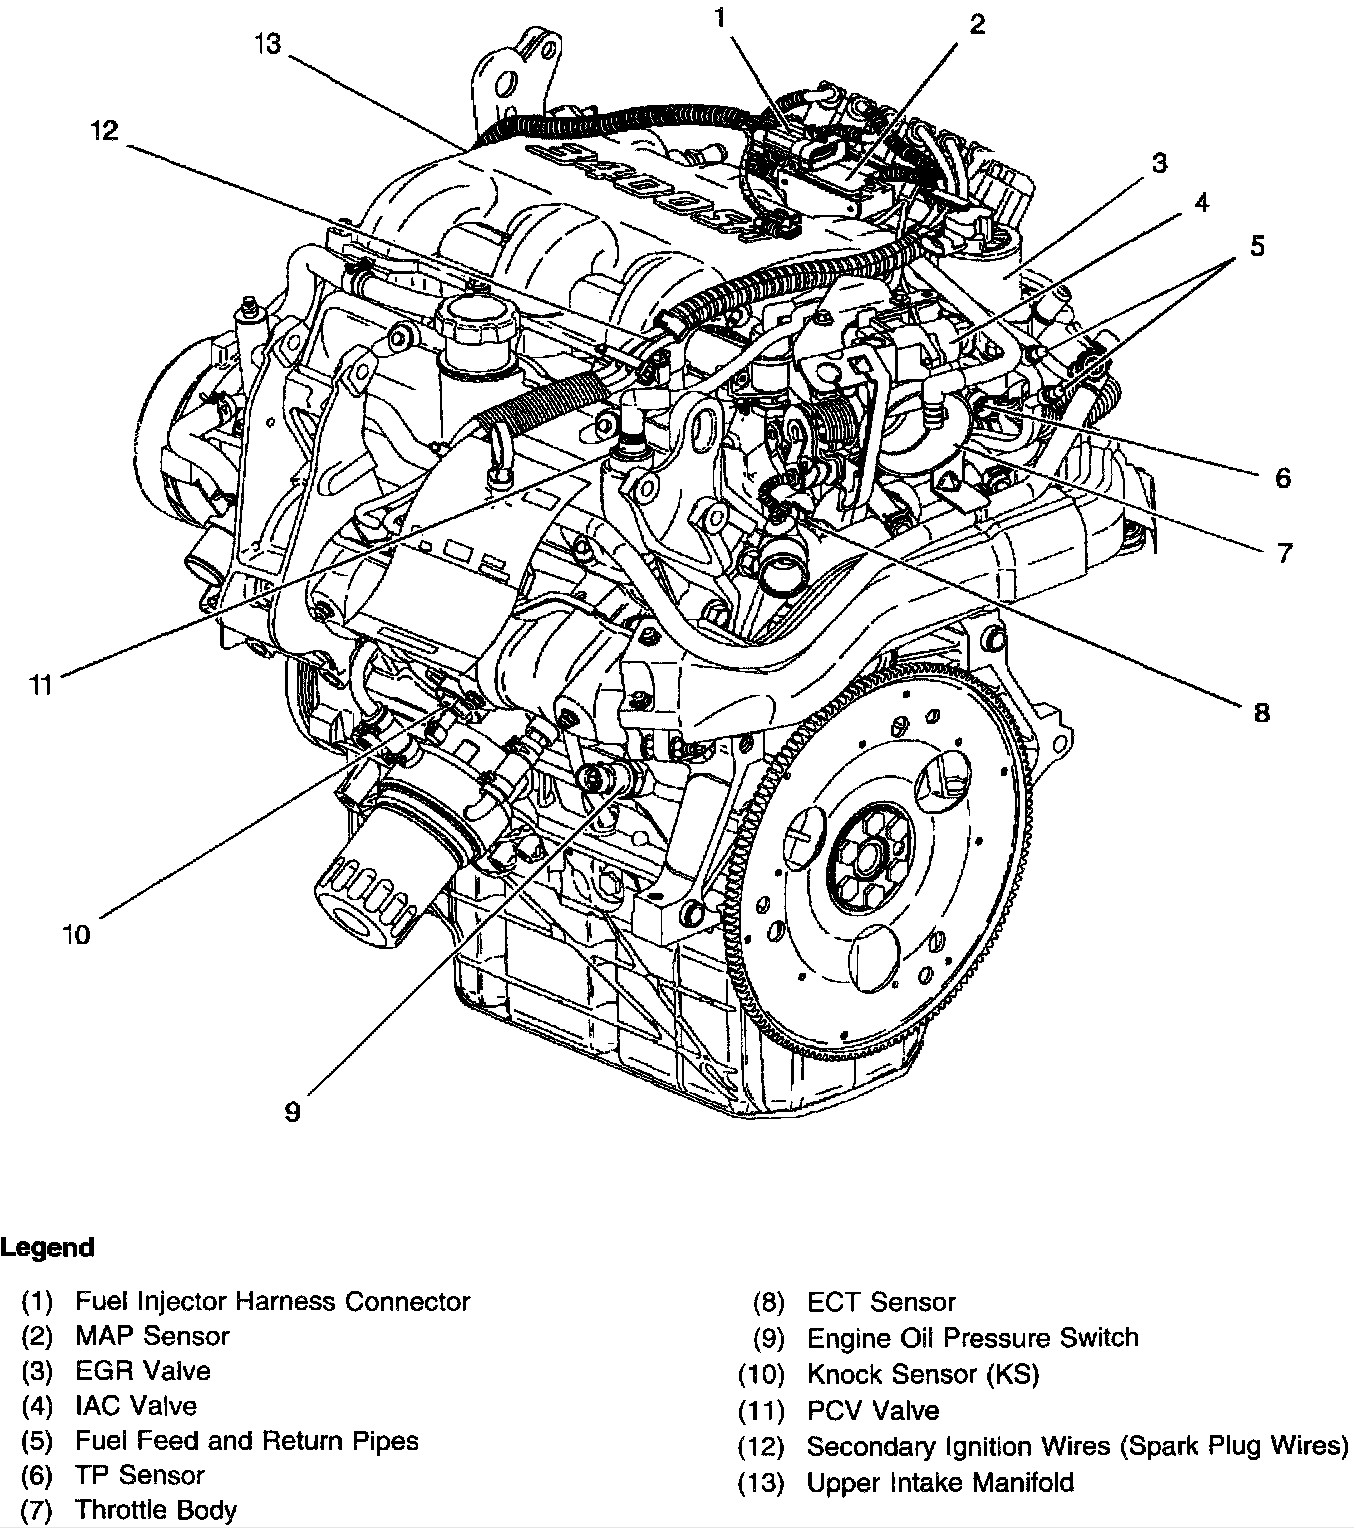 Ford 30 V6 Engine Diagram Trusted Wiring 2000 Of A 3 0 House Symbols U2022 Taurus